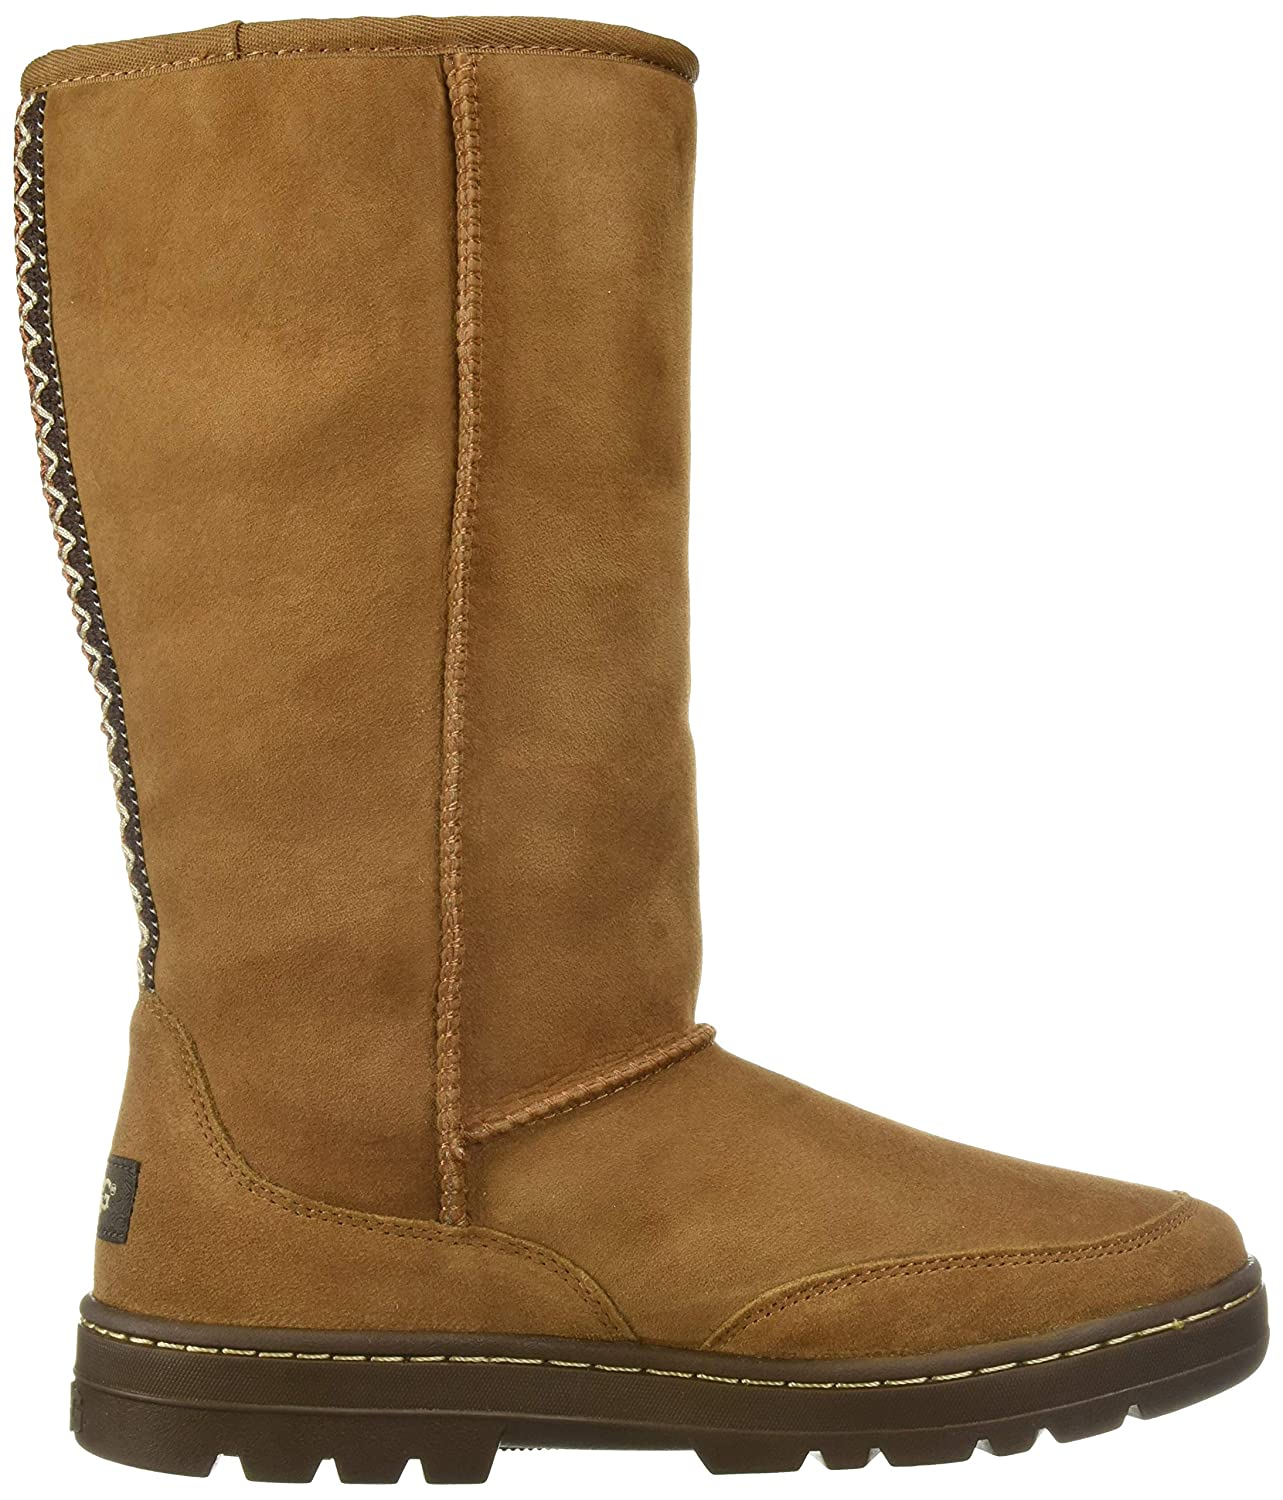 1f5a99f91af UGG Women's W Ultra Tall Revival Fashion Boot